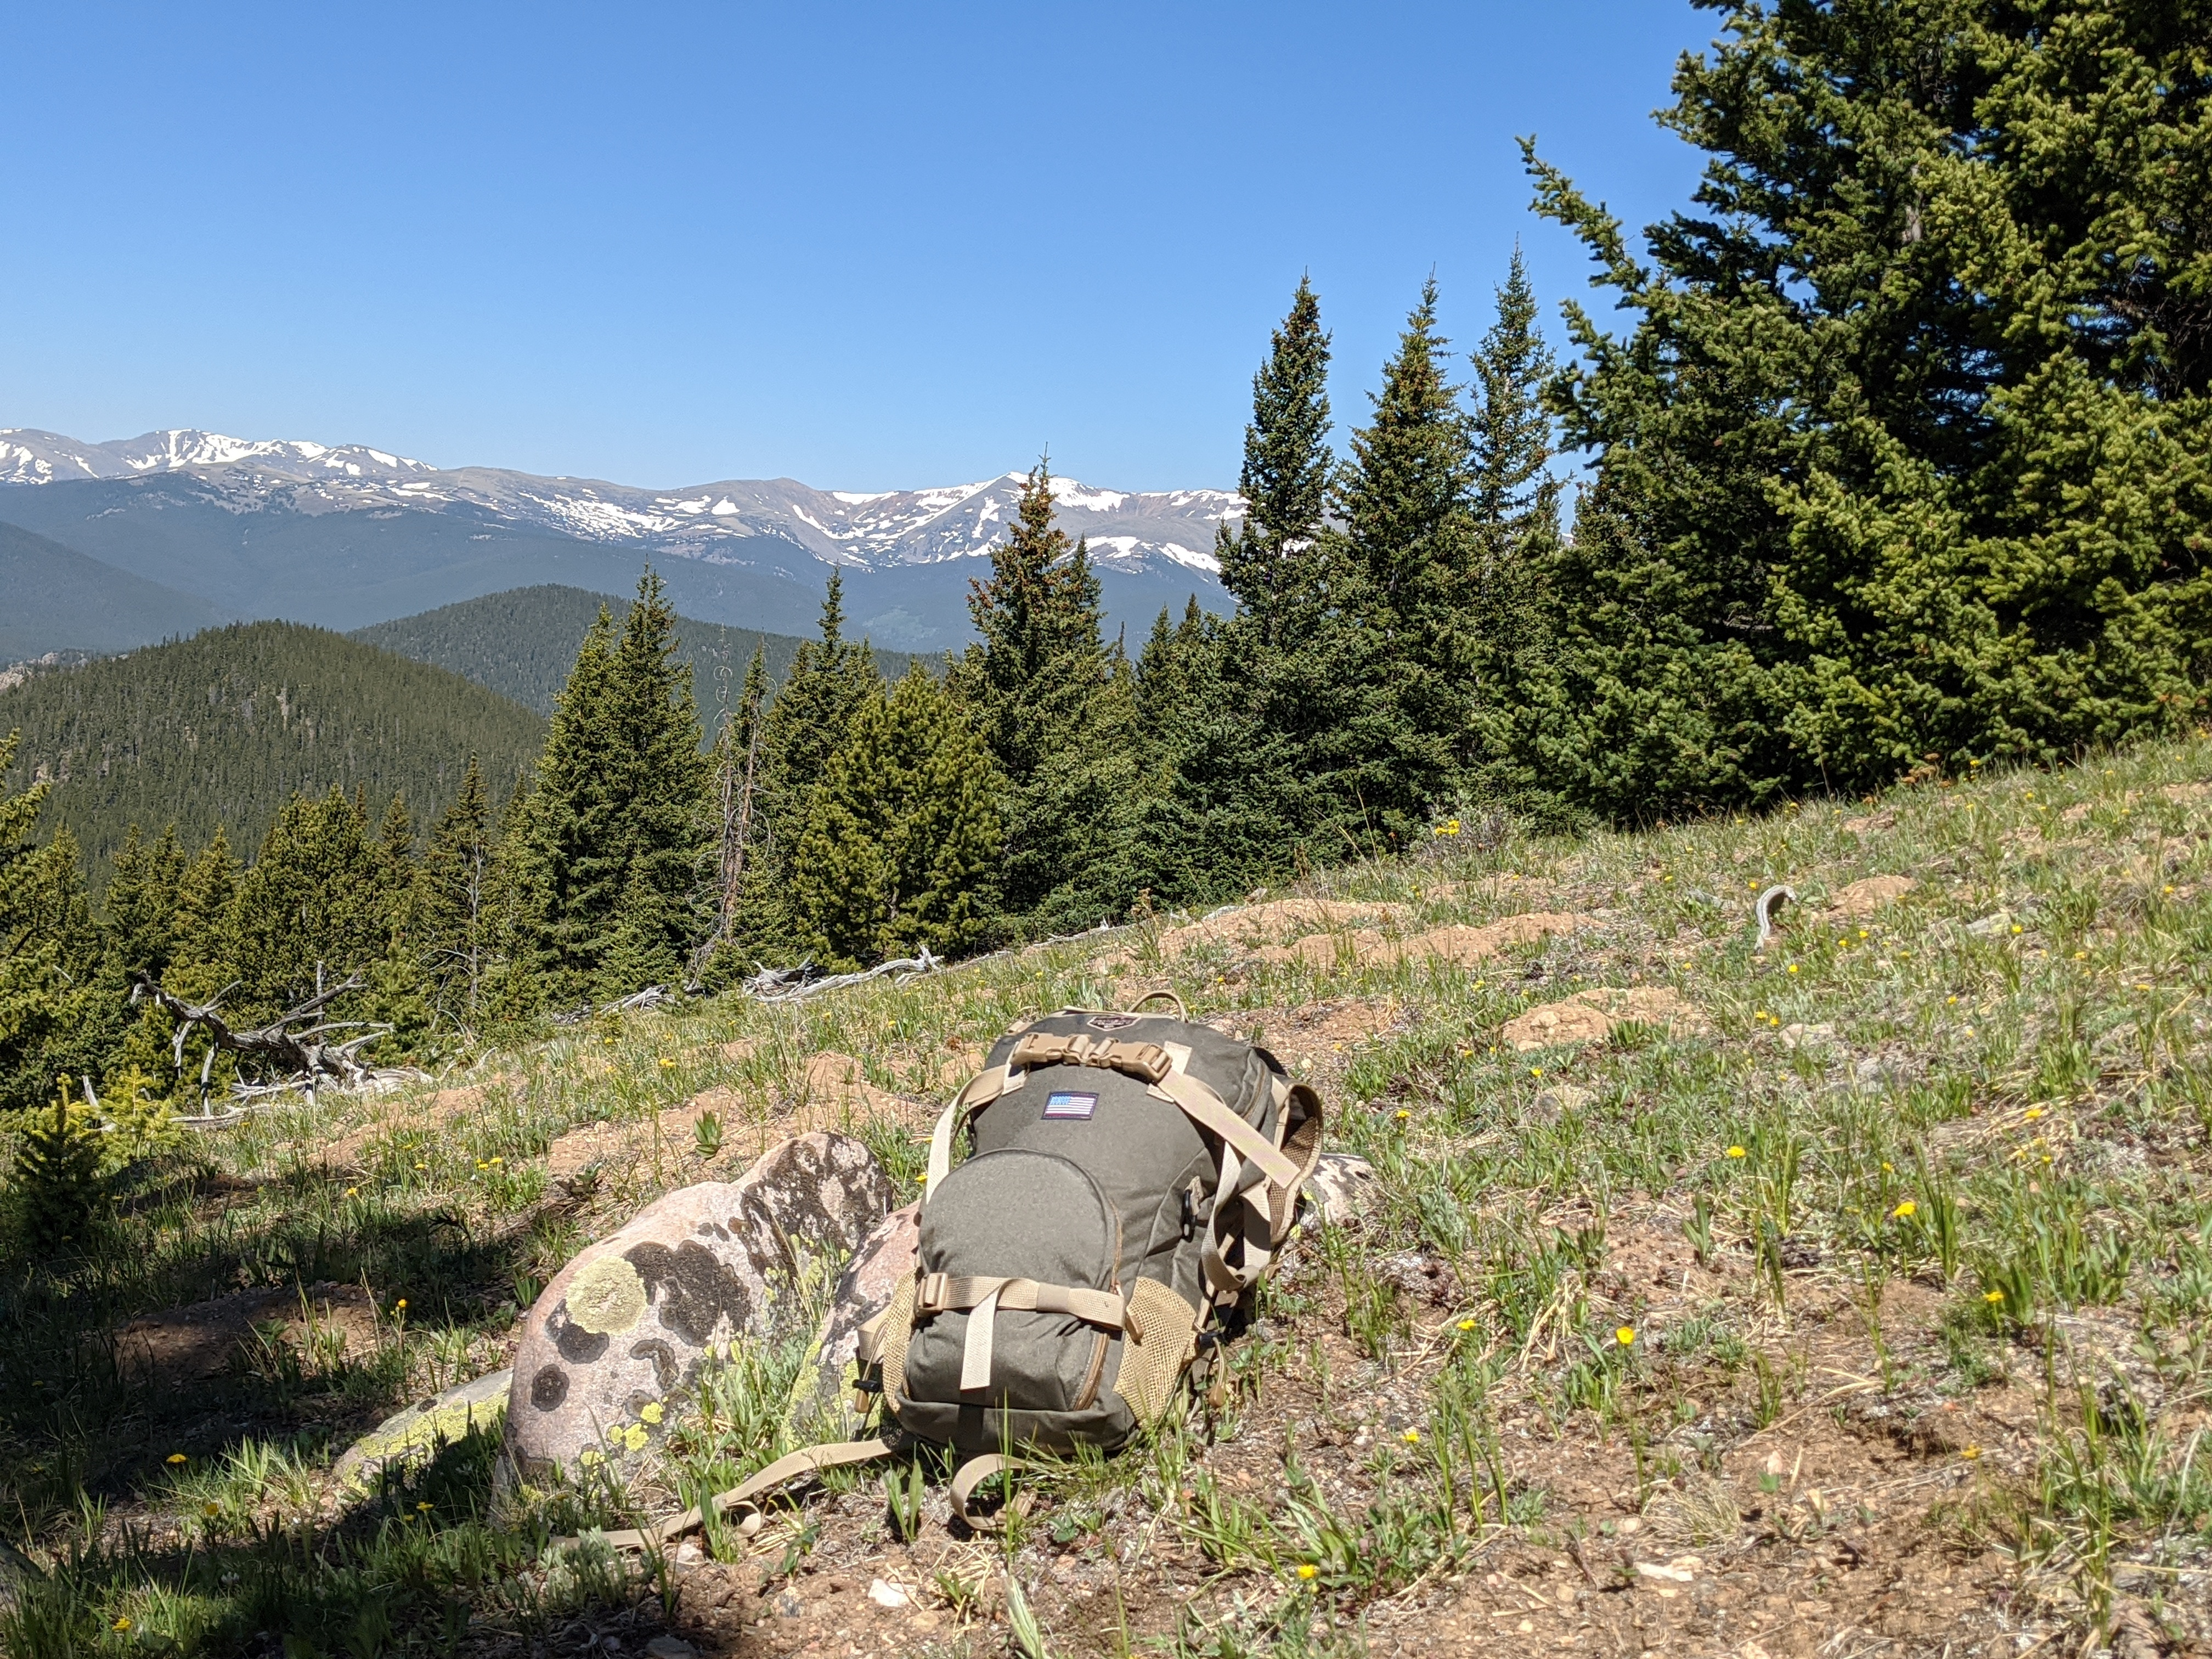 The Alaska Guide Creations Scout backpack on a trip into the Mount Evans Wilderness Area in Colorado.